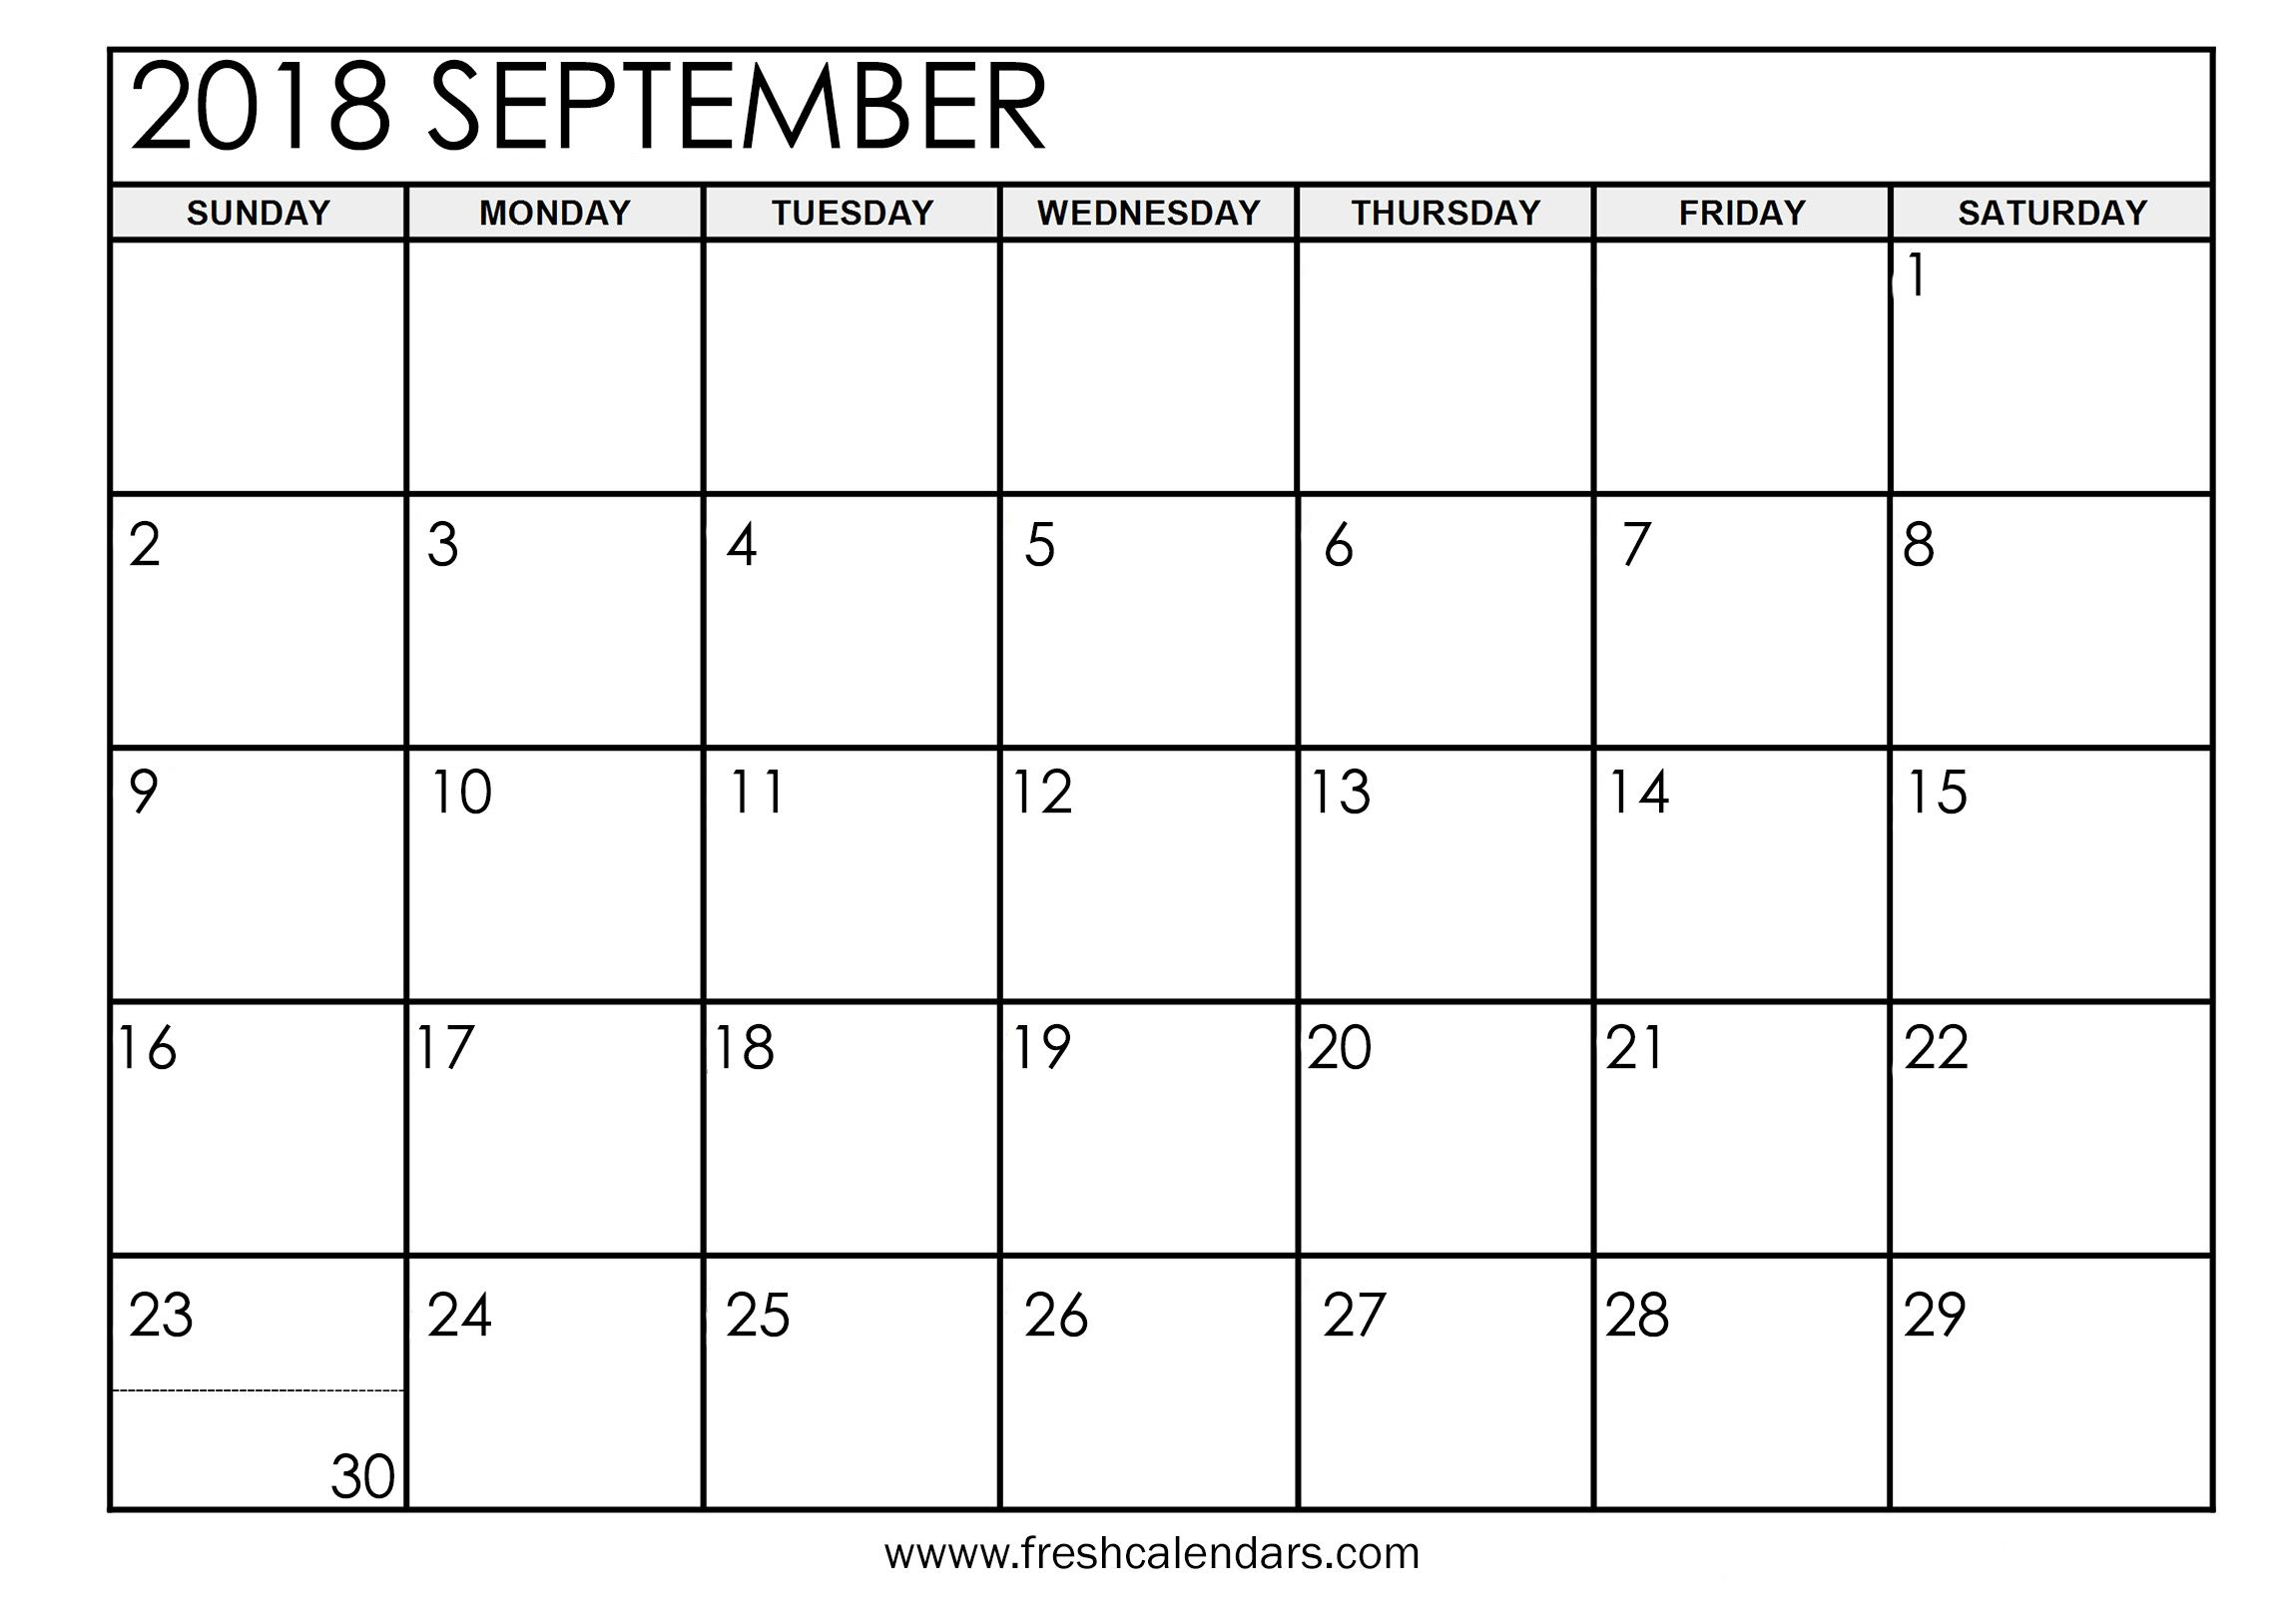 picture regarding Printable September Calendar titled September 2018 Calendar Printable - New Calendars